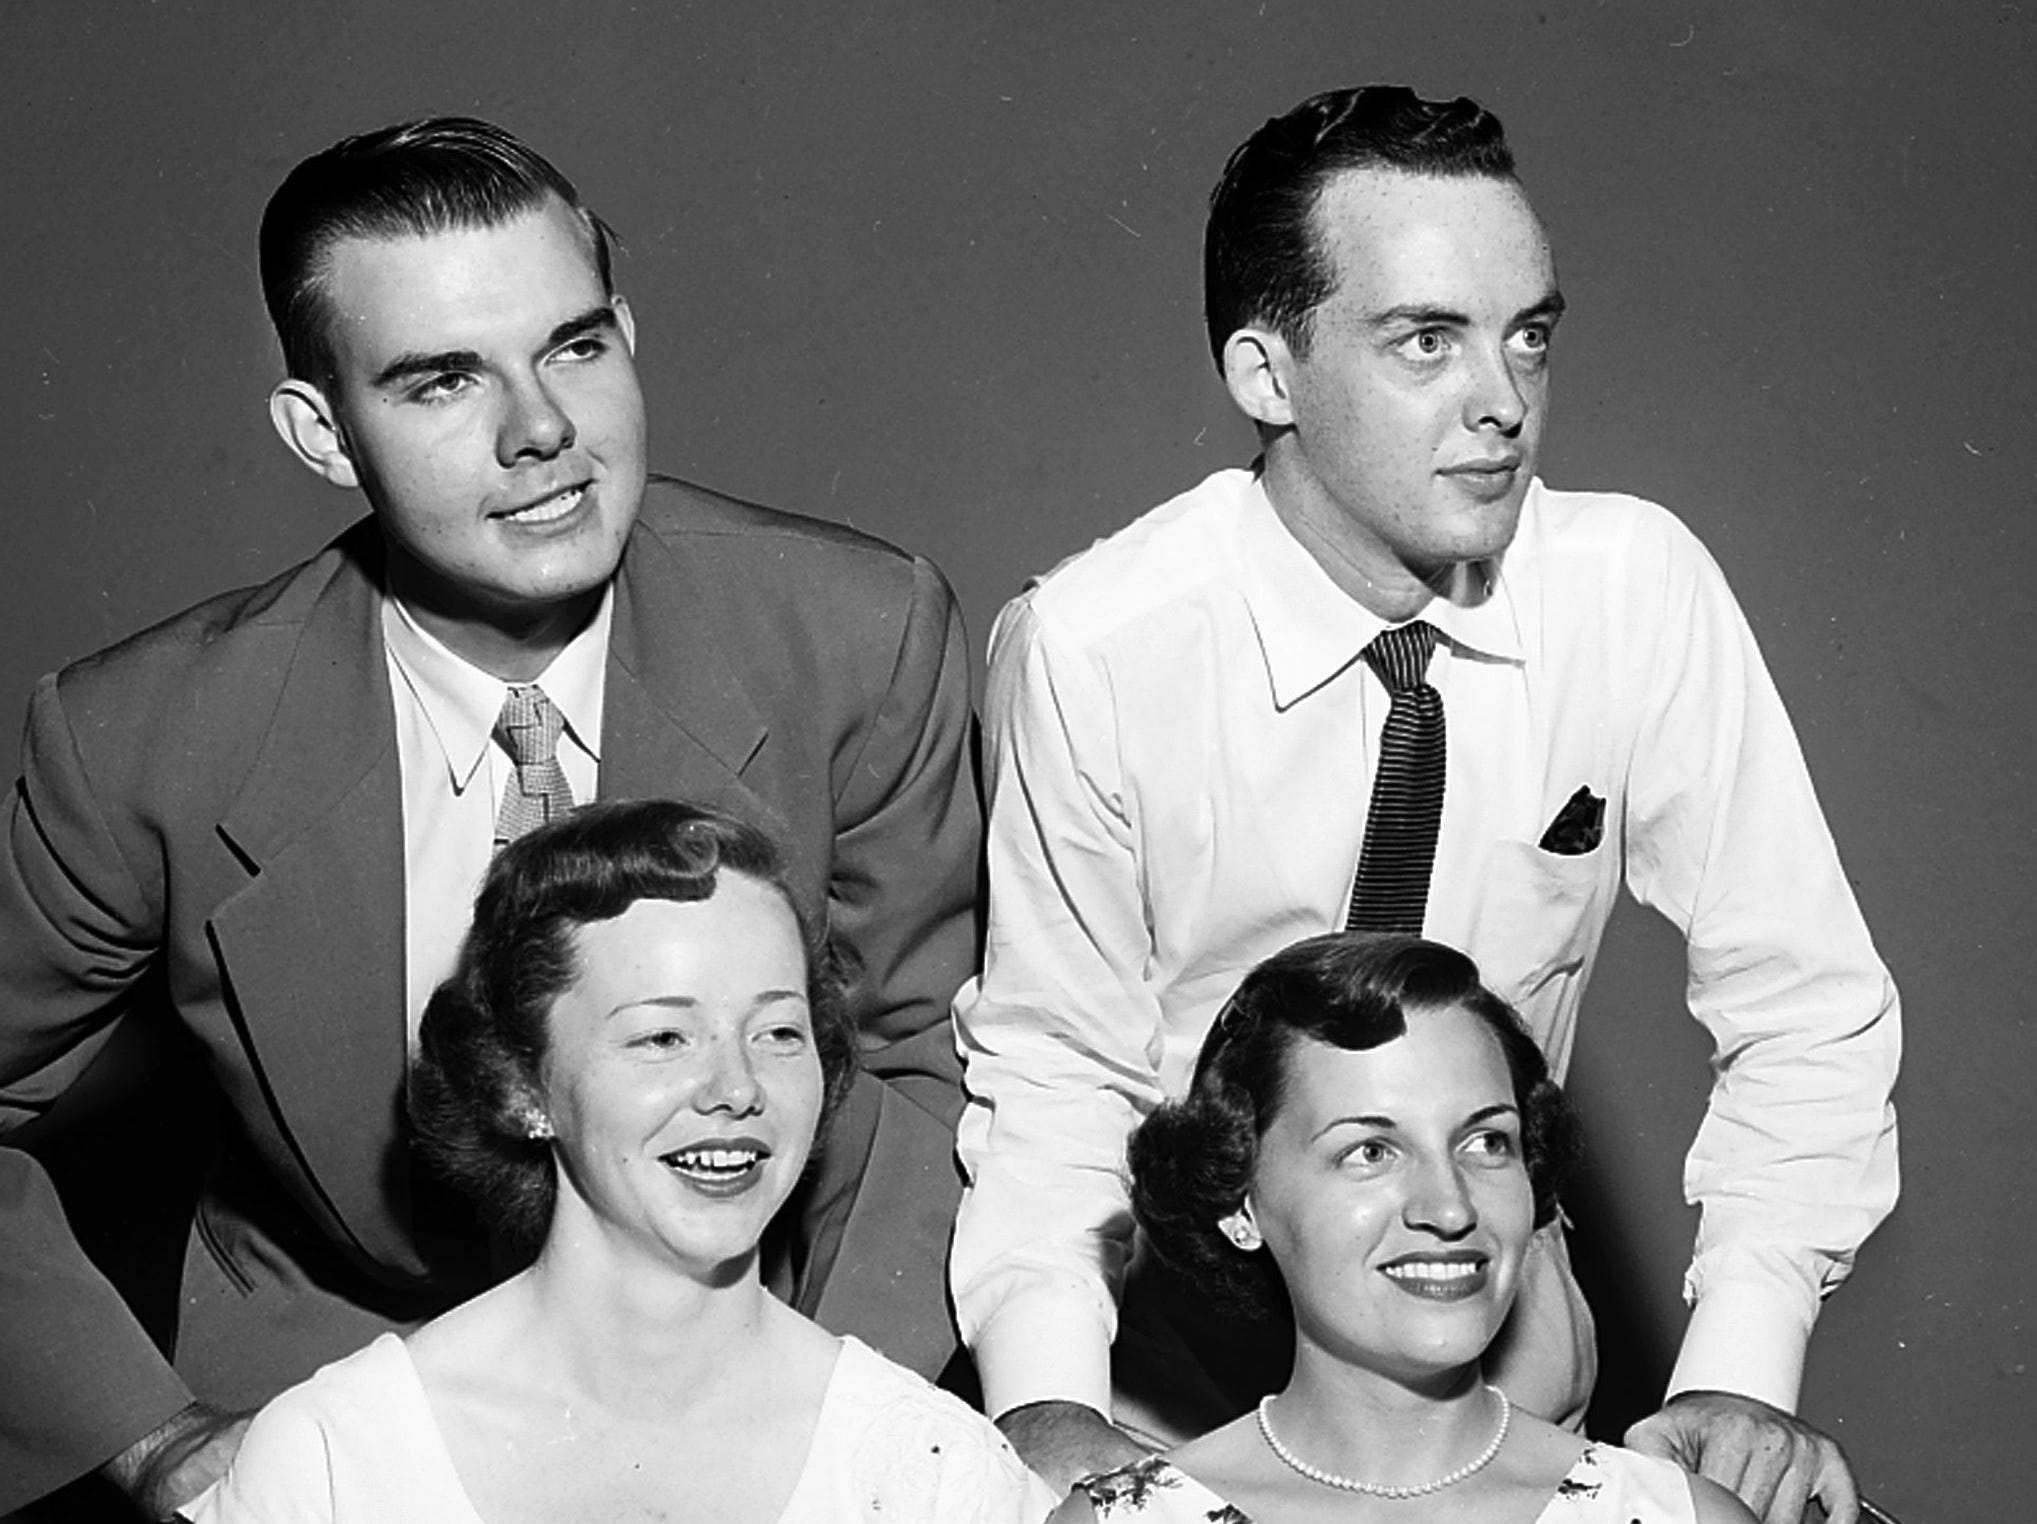 The Memphis State College Quartet were heard with the Memphis Concert Orchestra in a free concert at the Overton Park Shell during the second week of July 1953. Members of the quartet are Robert Kirkham (Left), Wiley Tatum (Right), Martha Ann Gill (Left) and Marjorie Summers (Right).